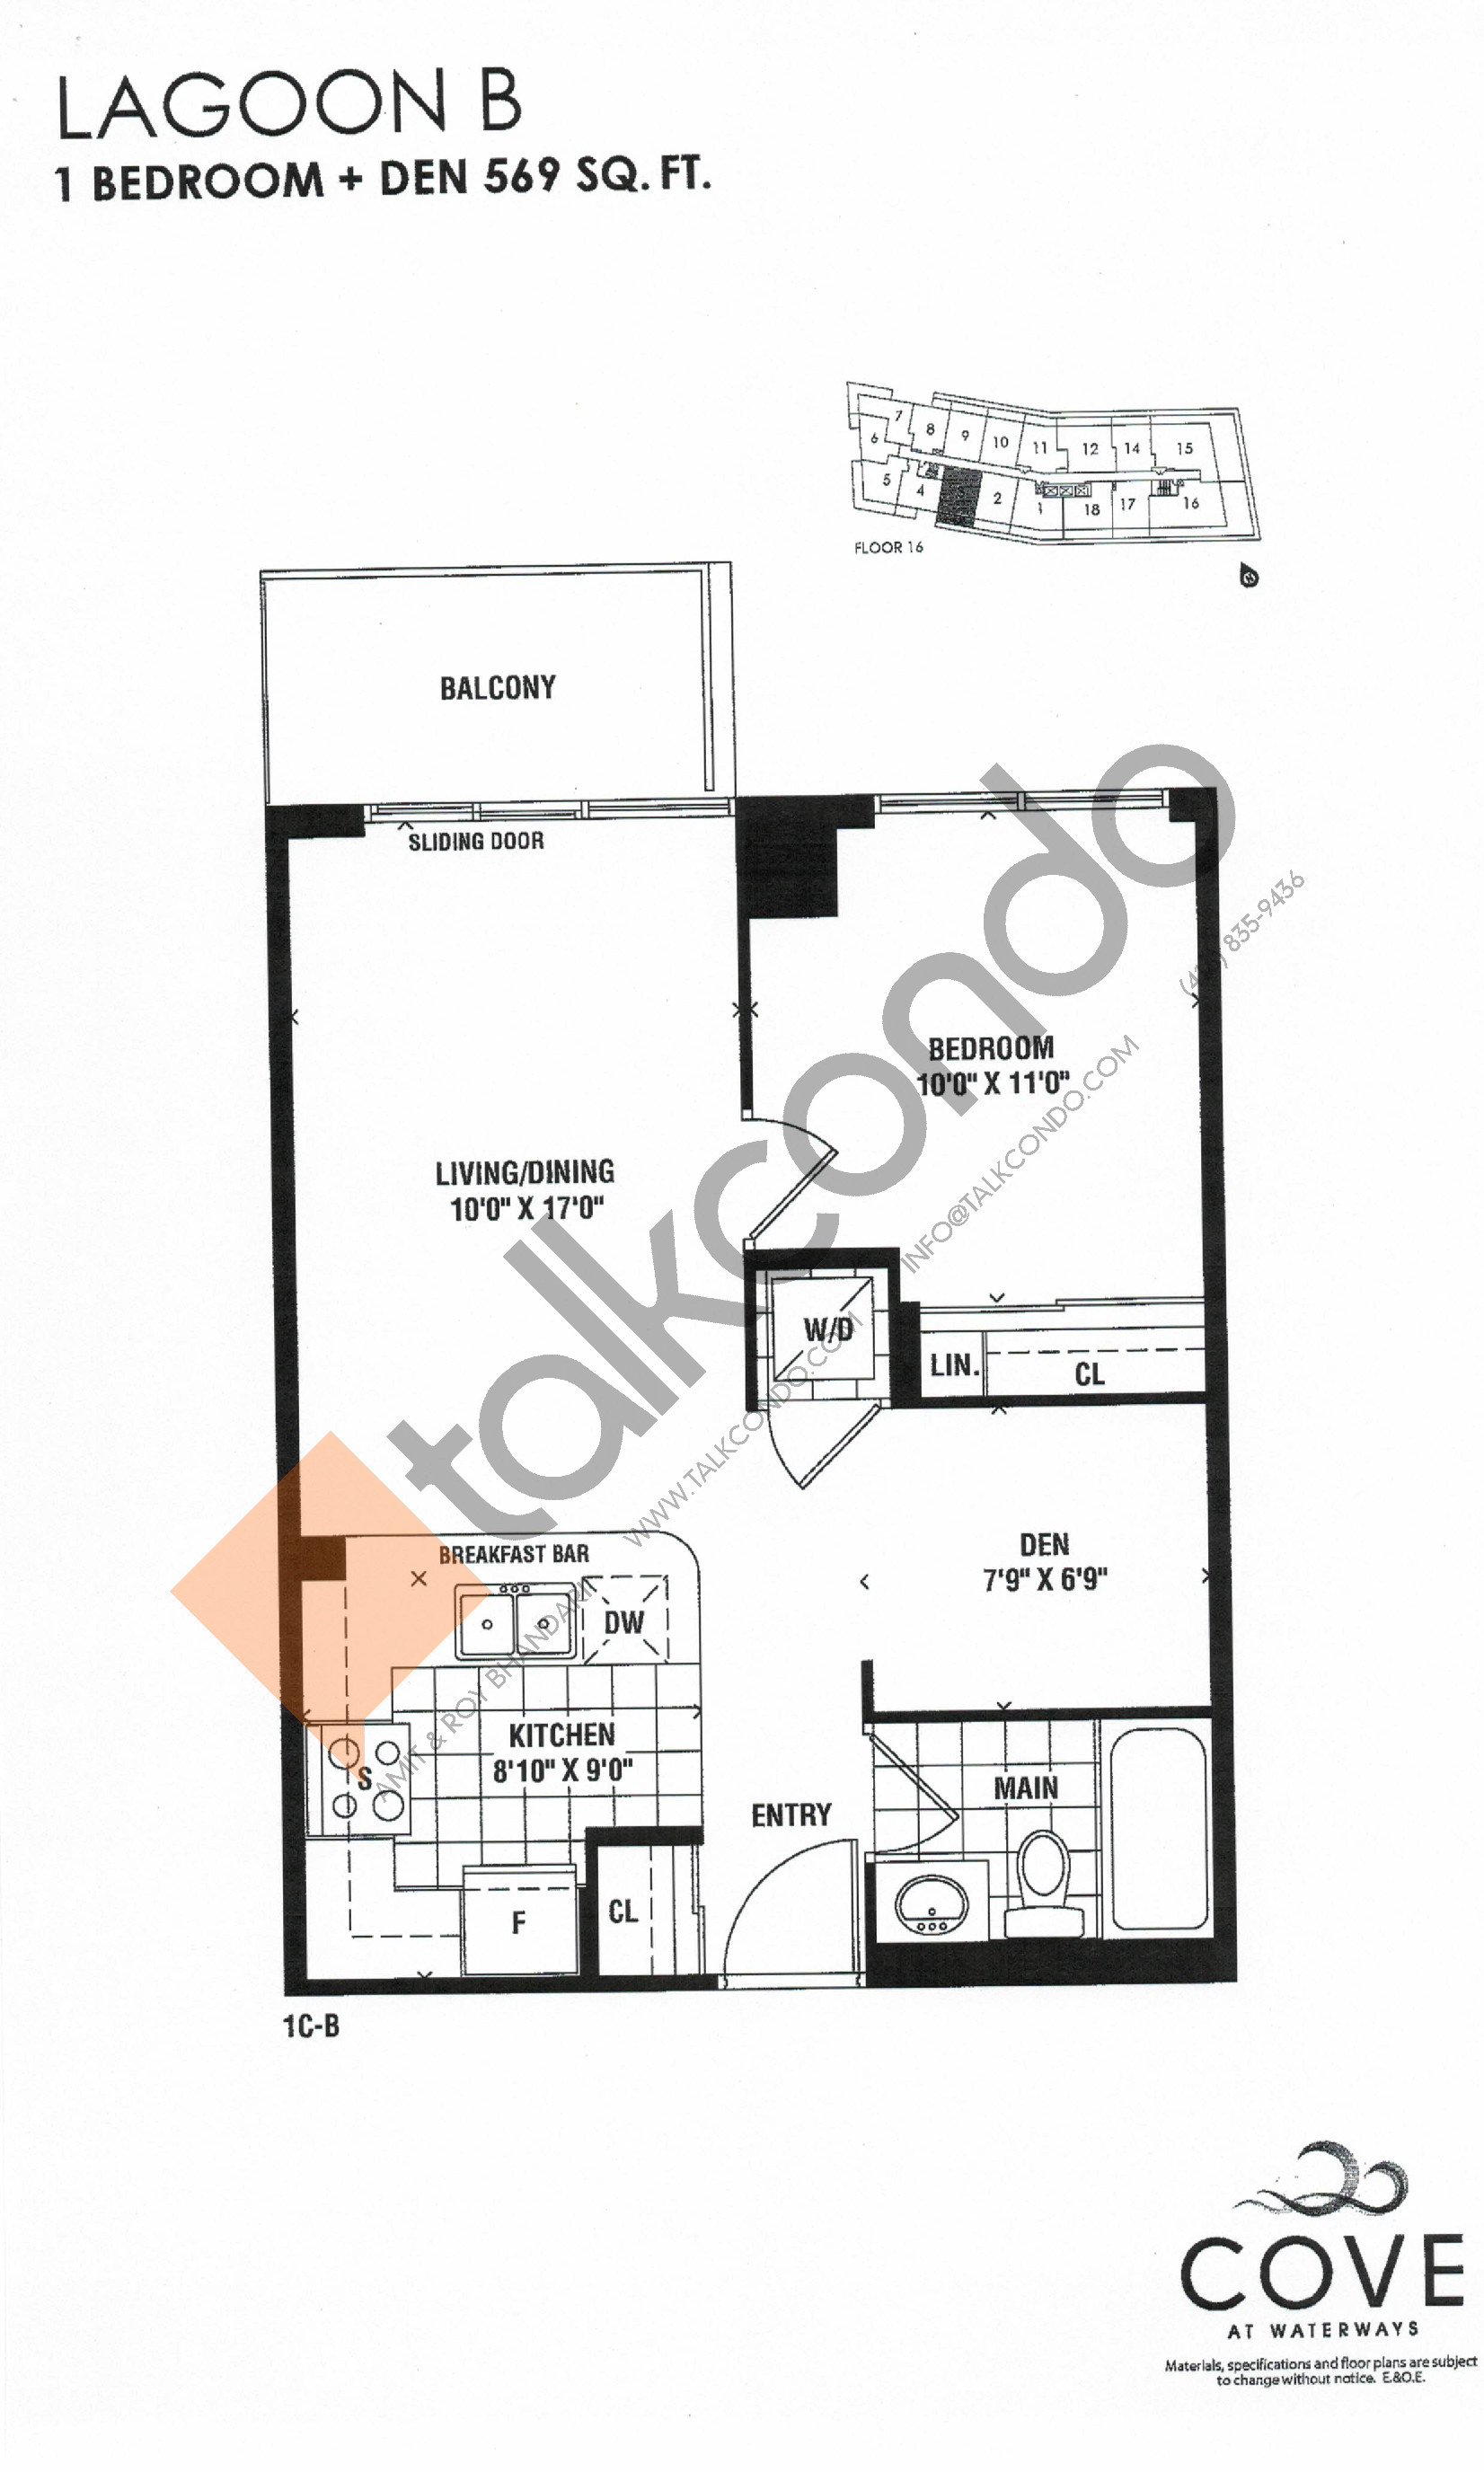 Lagoon B Floor Plan at Cove at Waterways Condos - 569 sq.ft